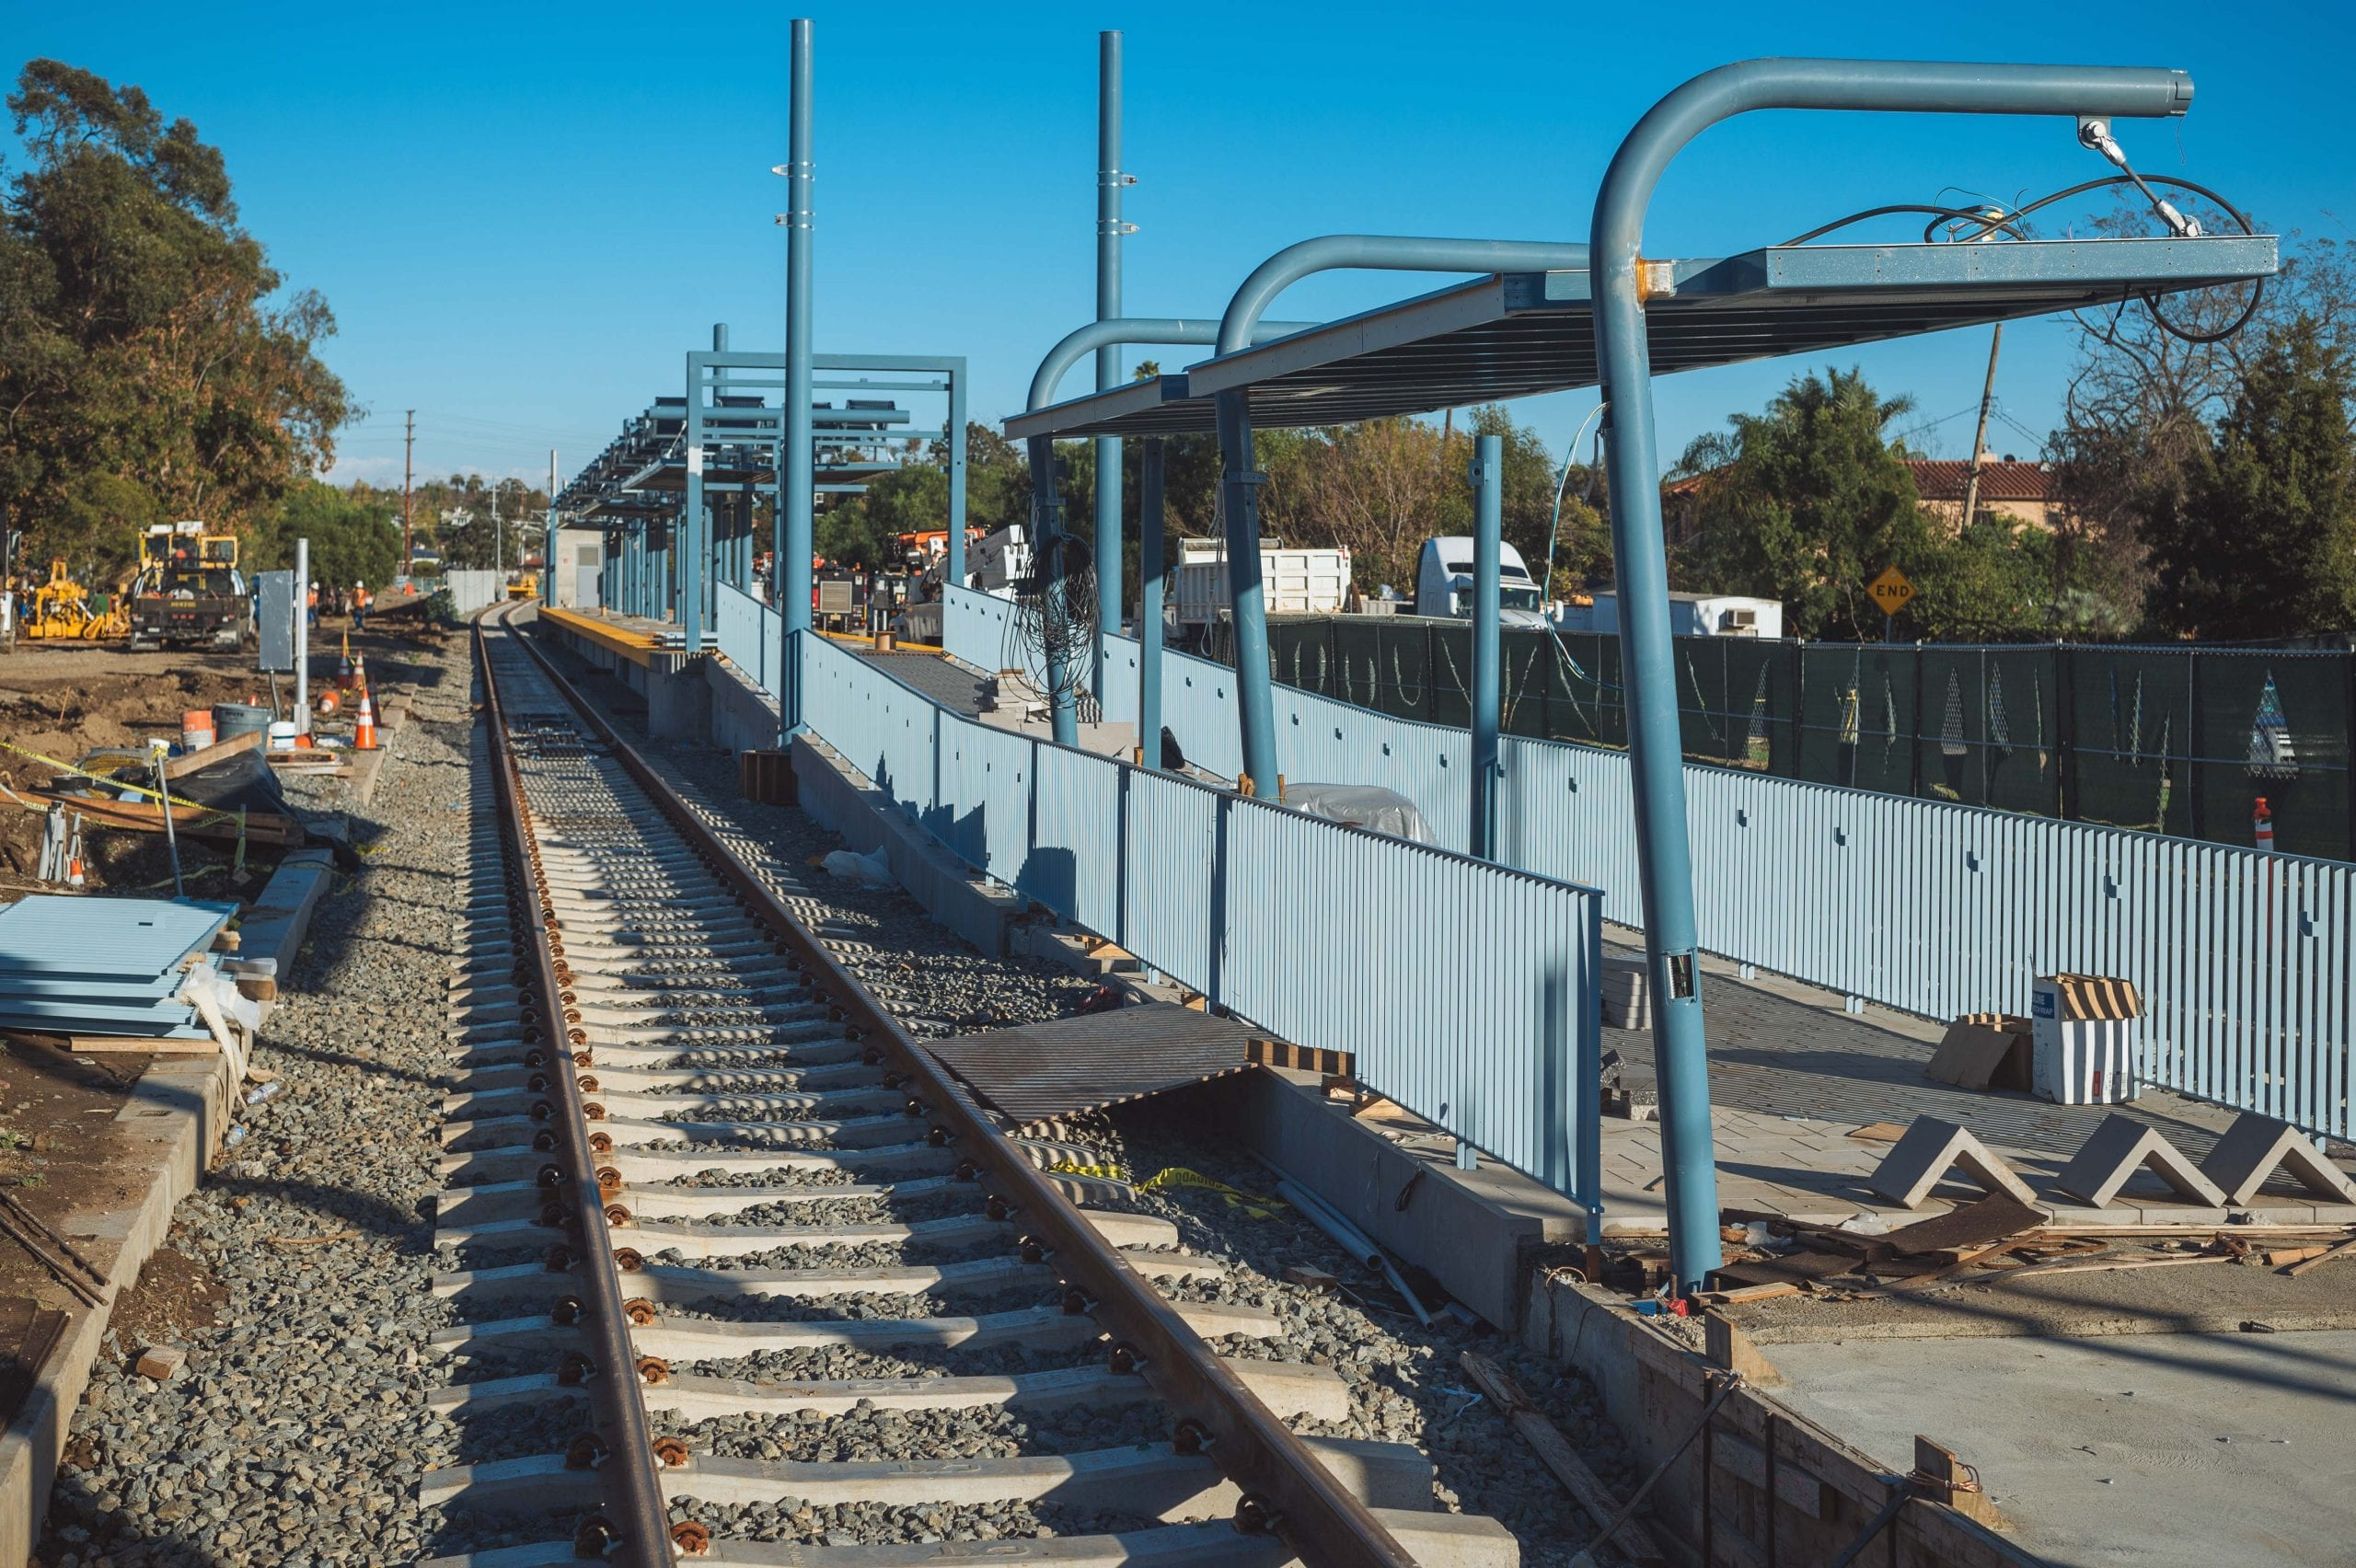 ART OF TRANSIT: The future Westwood/Rancho Park station for the Expo Line as seen from Westwood Boulevard this weekend. Work on the six-mile second phase of the Expo Line continues with construction scheduled for completion next year. Photo by Steve Hymon/Metro.